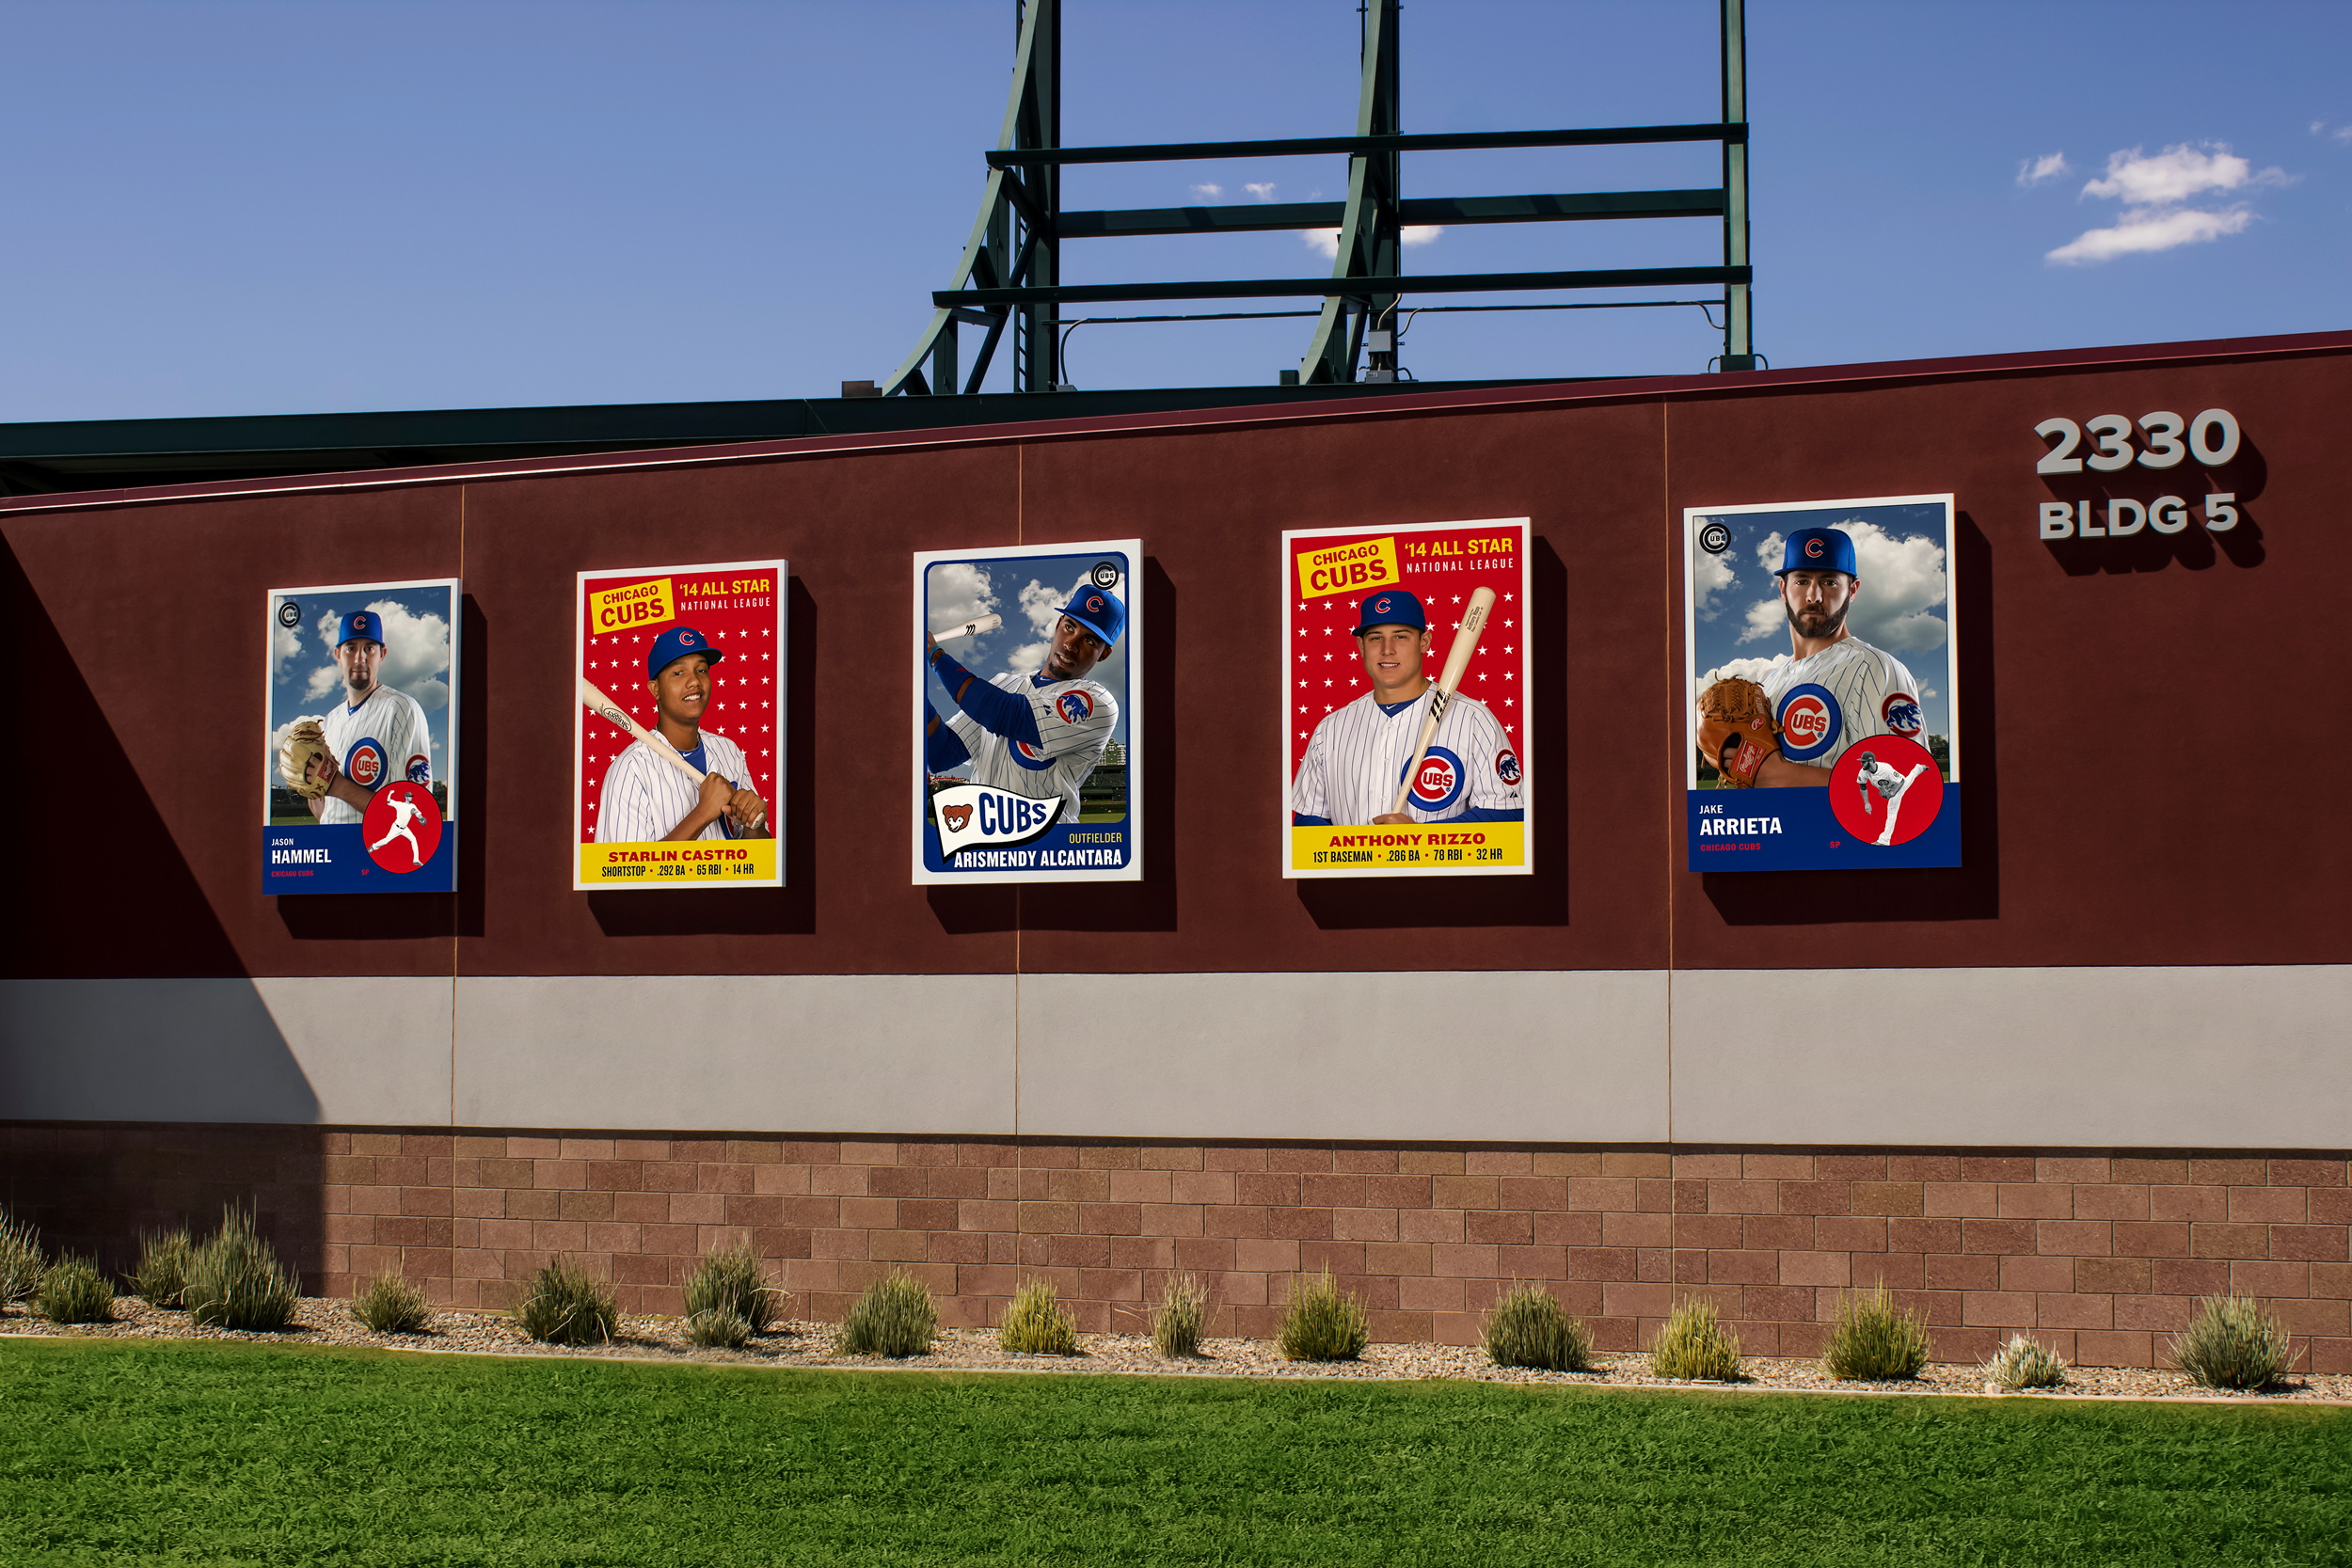 Vintage feel baseball cards are constructed from aluminum and high resolution grand format digital prints.